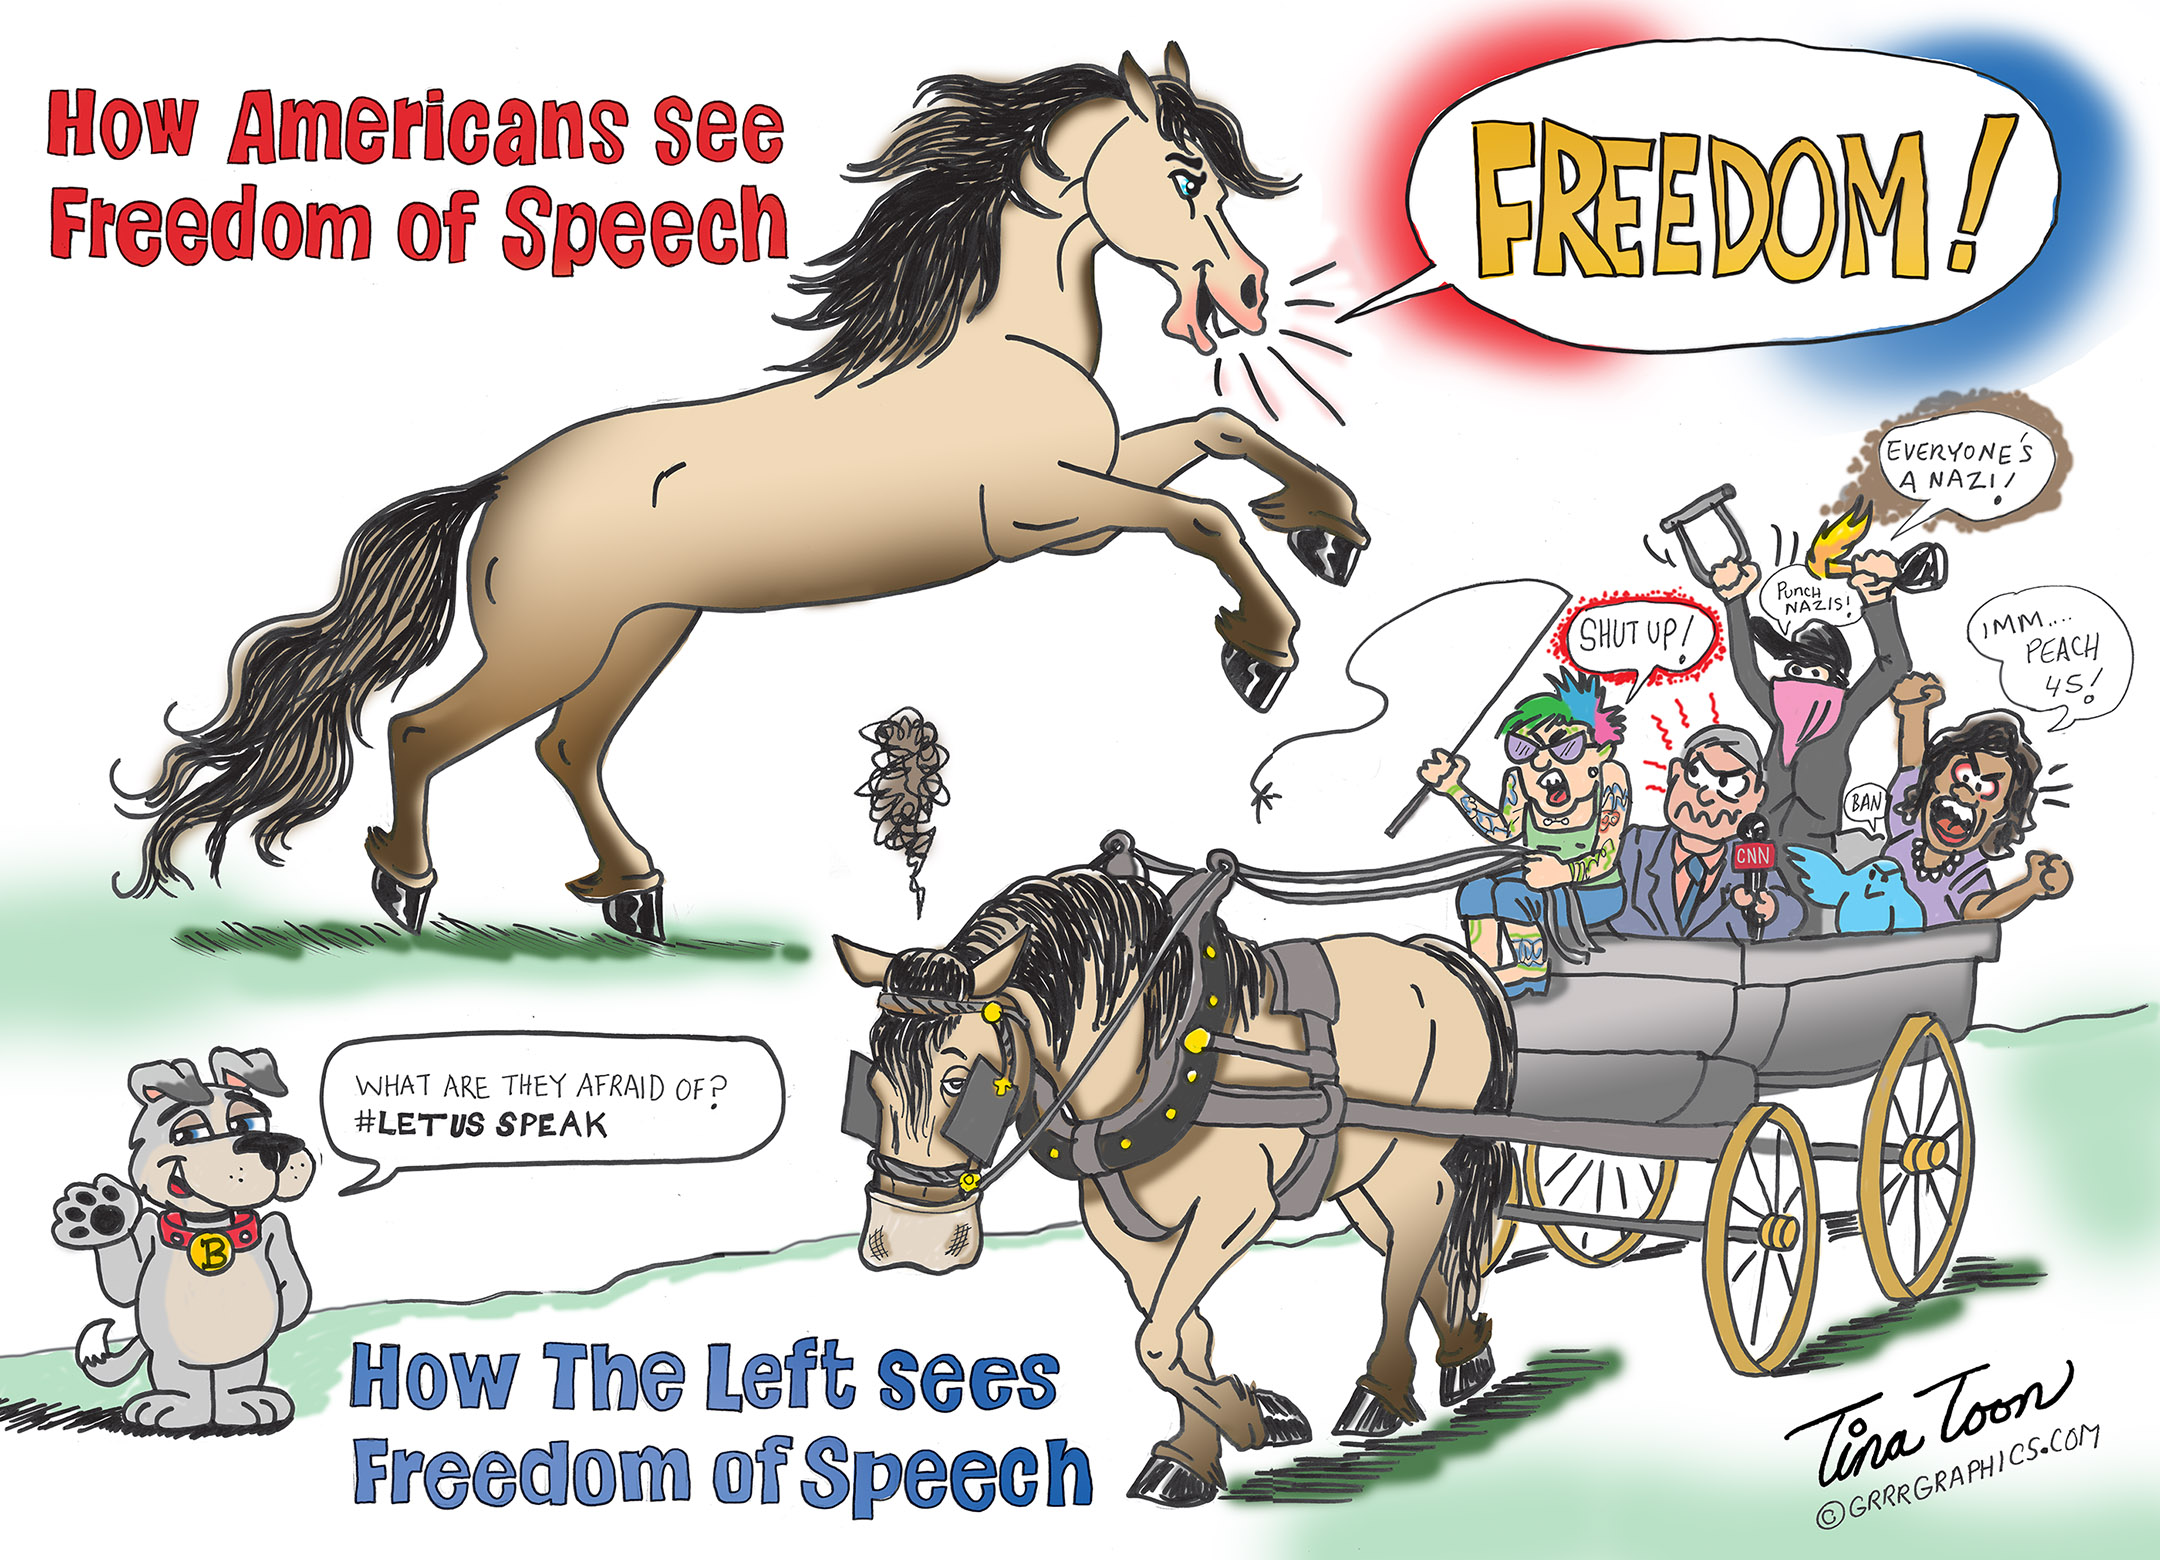 [Image: freedom-of-speech-horse-Tina-Toon.jpg]